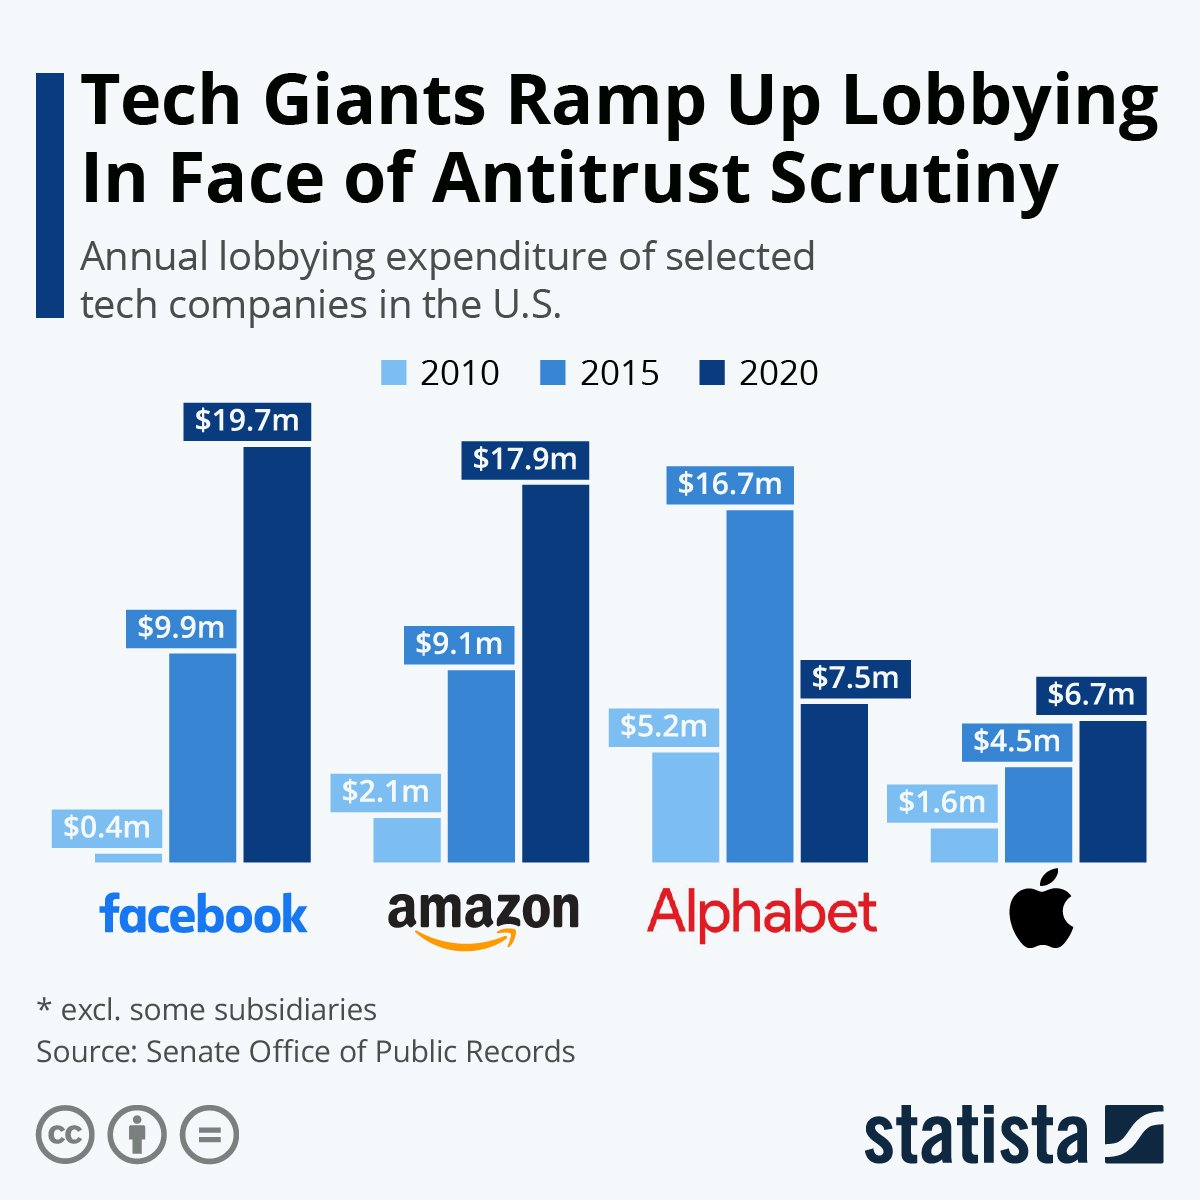 Antitrust scrutiny is getting more expensive for tech giants